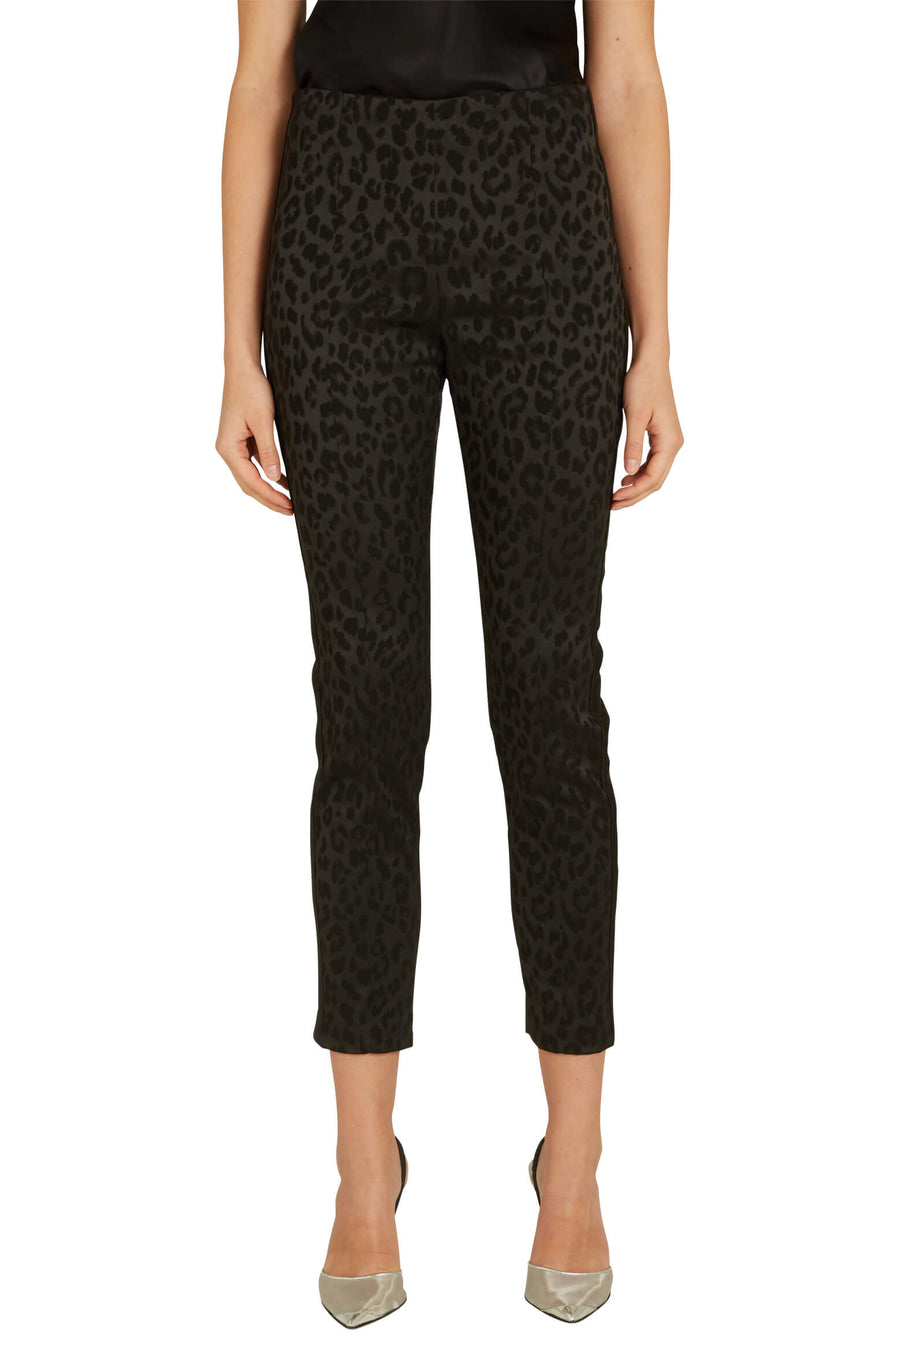 Veronica Beard Honolulu pants in black from The New Trend